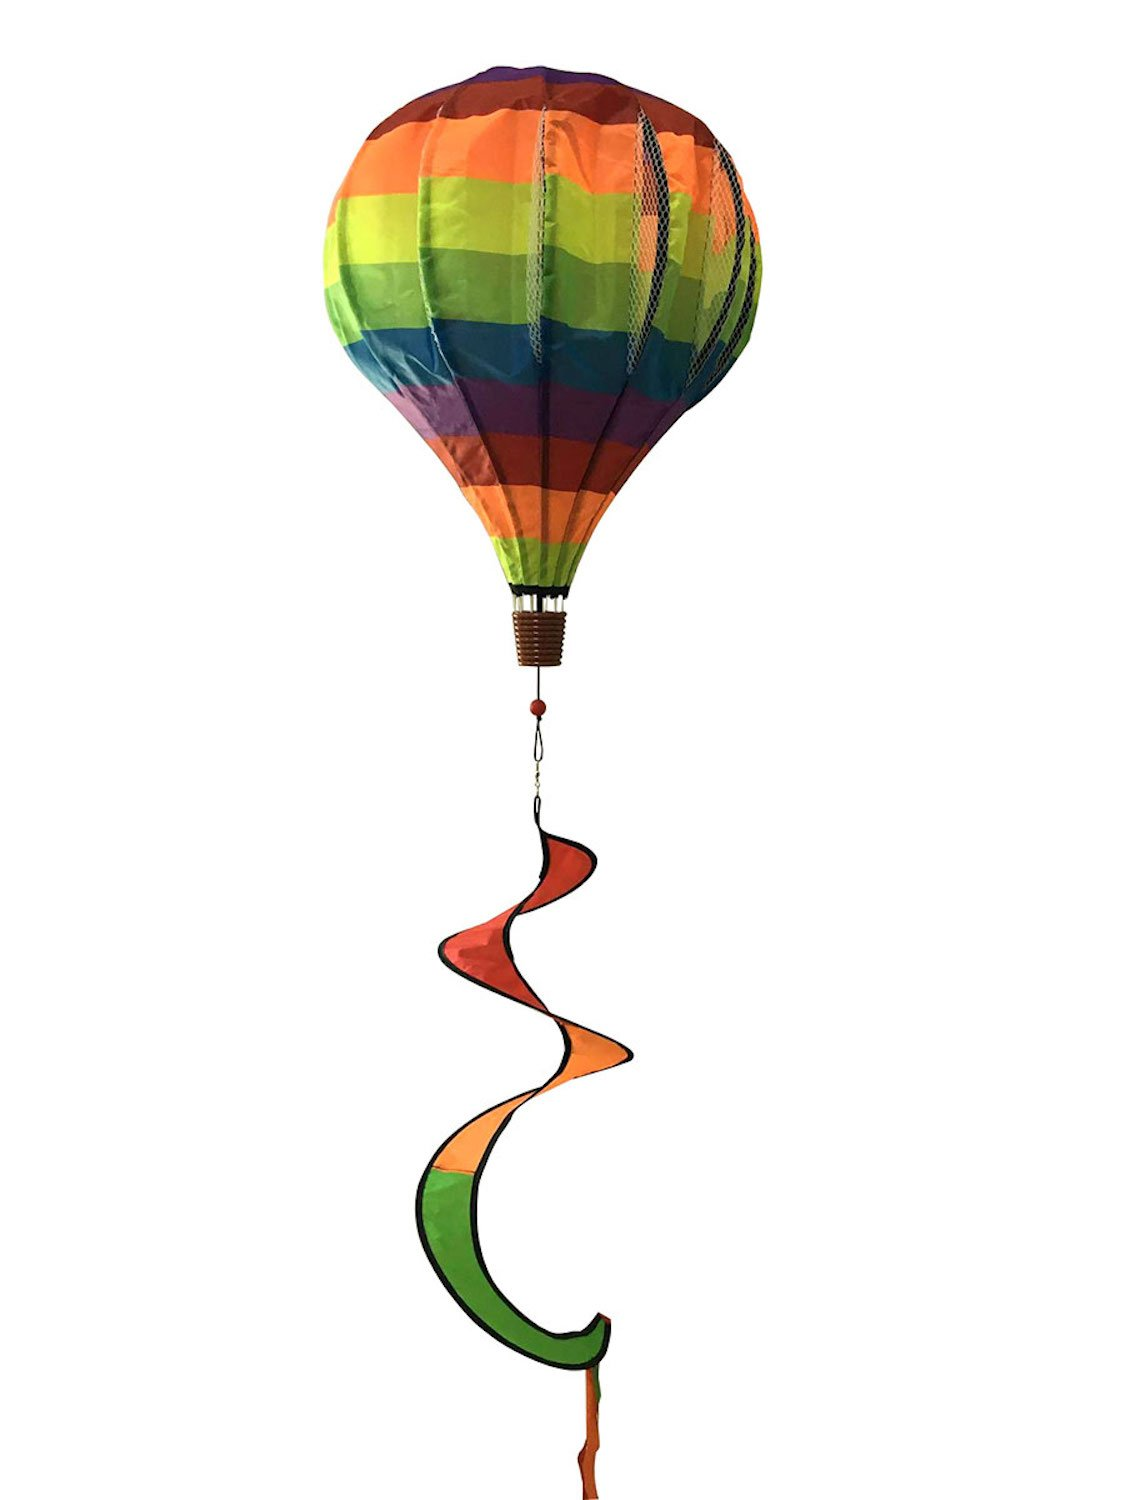 Rainbow Deluxe Hot Air Balloon Wind Twister Everyday 54''L Briarwood Lane